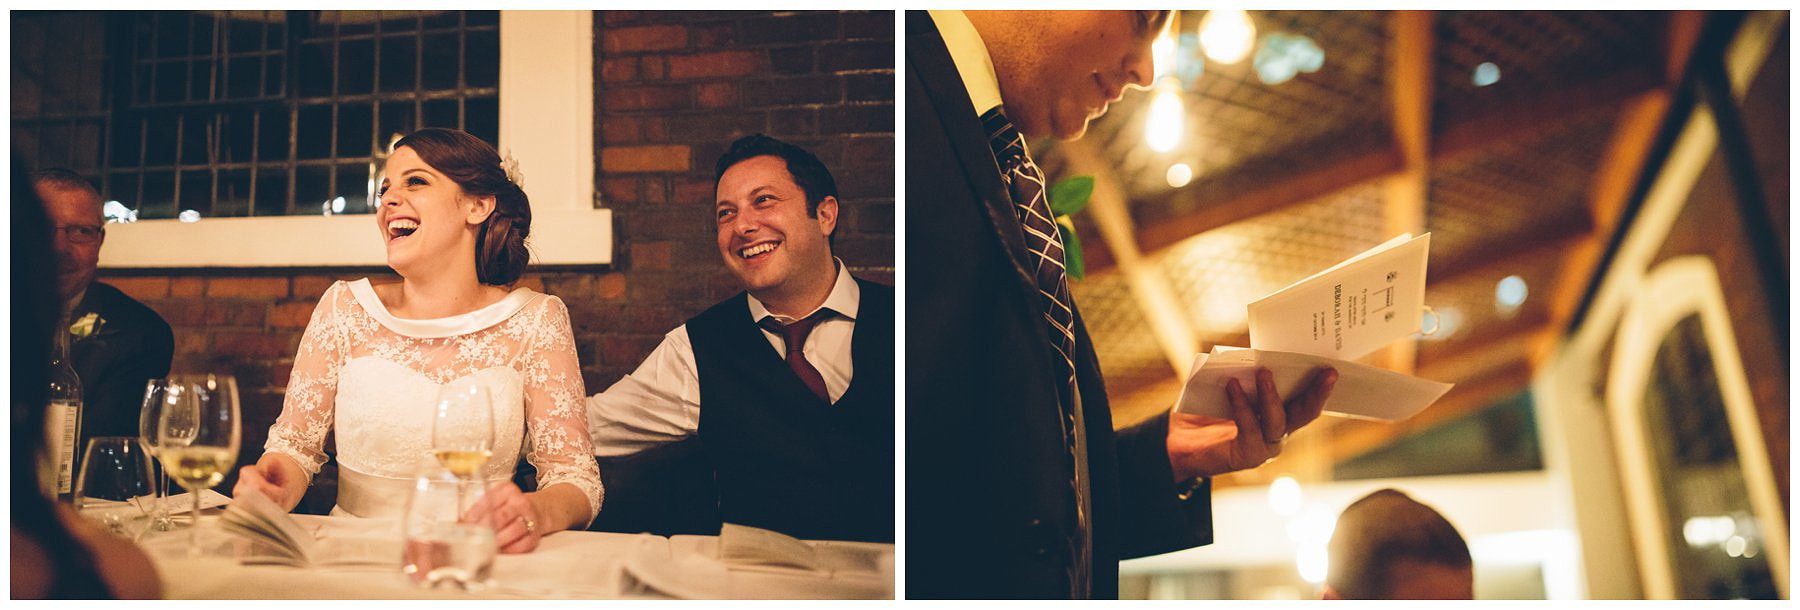 Bevis_Marks_Synagogue_Wedding_Photography_0105